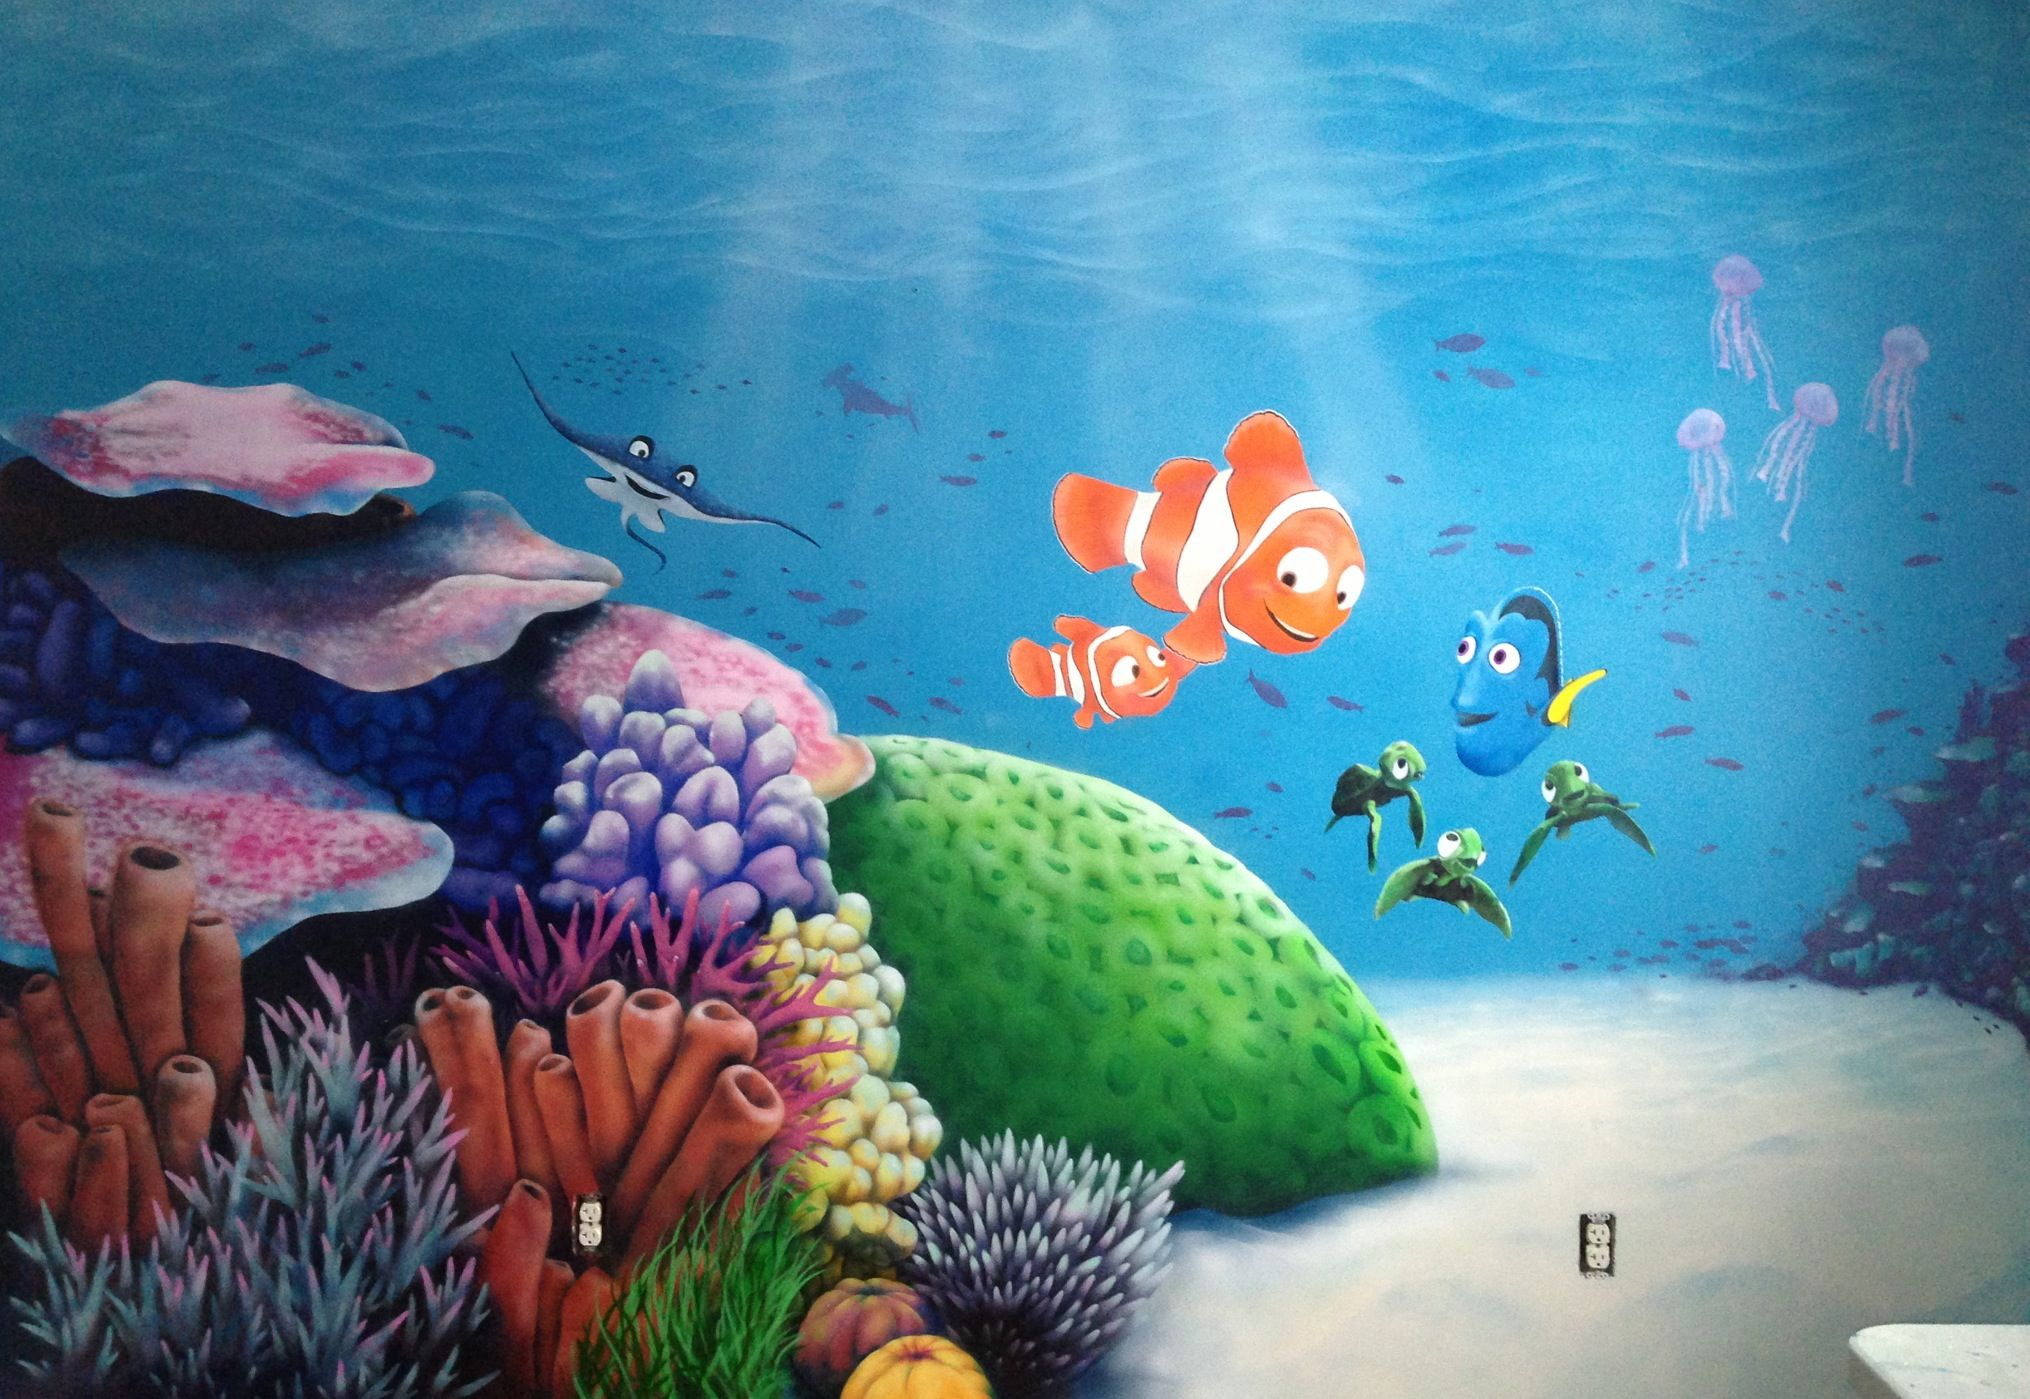 Jackson S Fish Mural Pic 1 Airbrush Spray Paint Marc